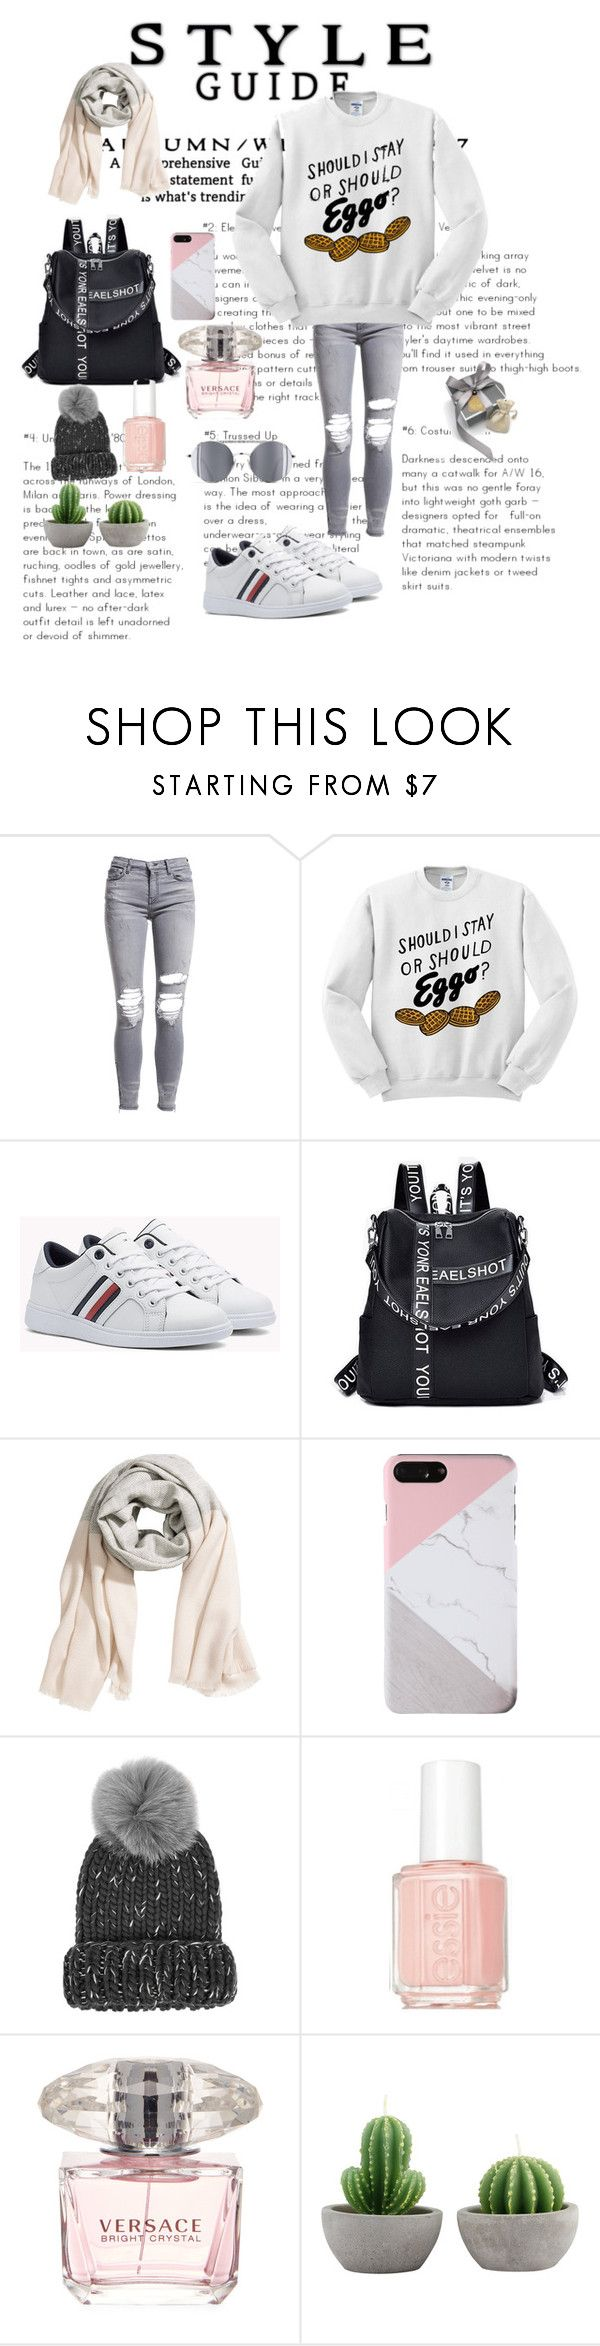 """Untitled #147"" by thifaf-darwish ❤ liked on Polyvore featuring AMIRI, H&M, Eugenia Kim, Essie and Versace"